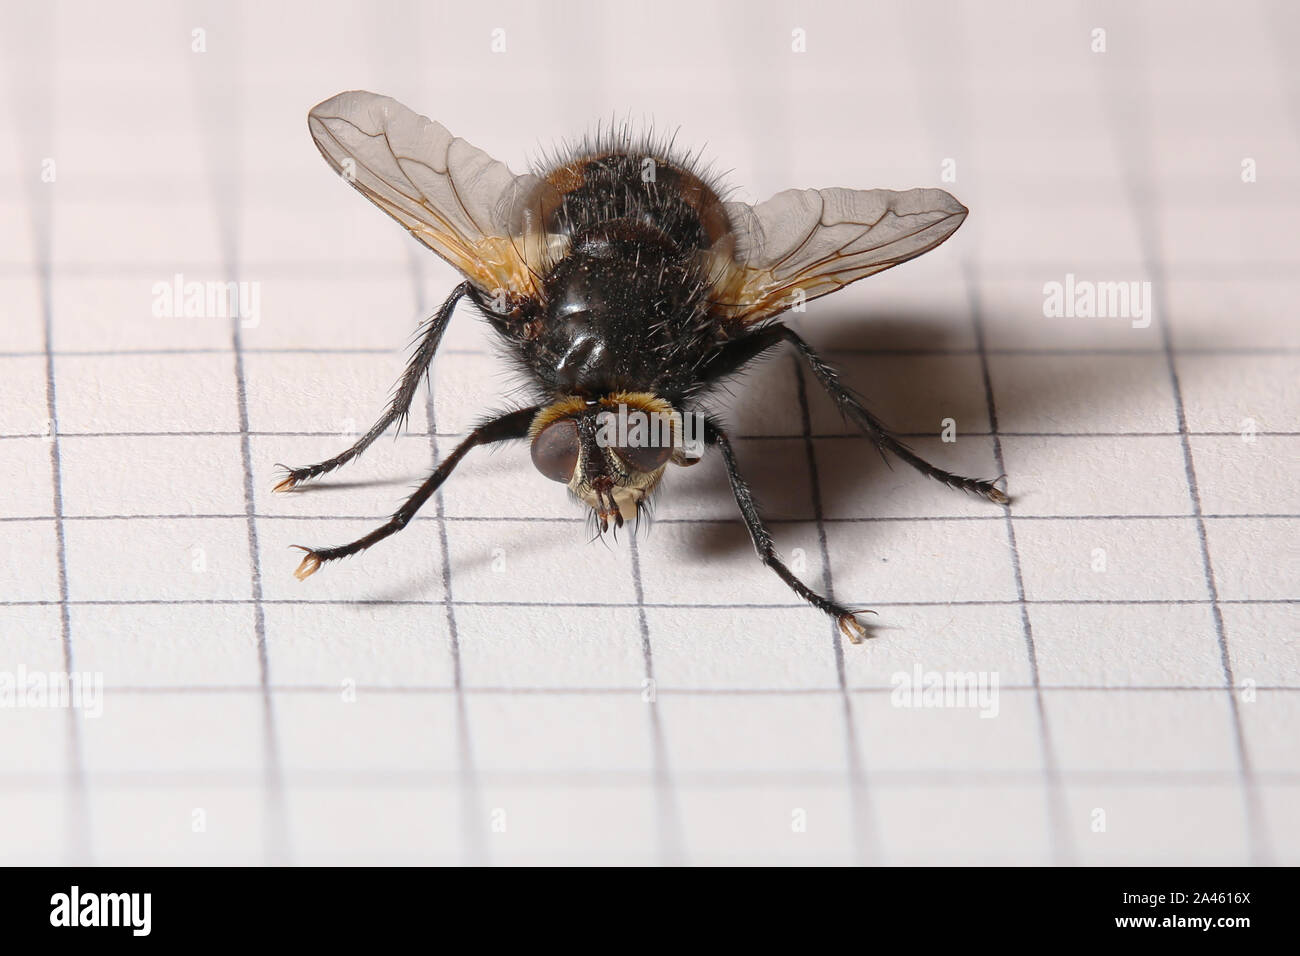 Macro shot of a fly from the family tachinidae. Stock Photo